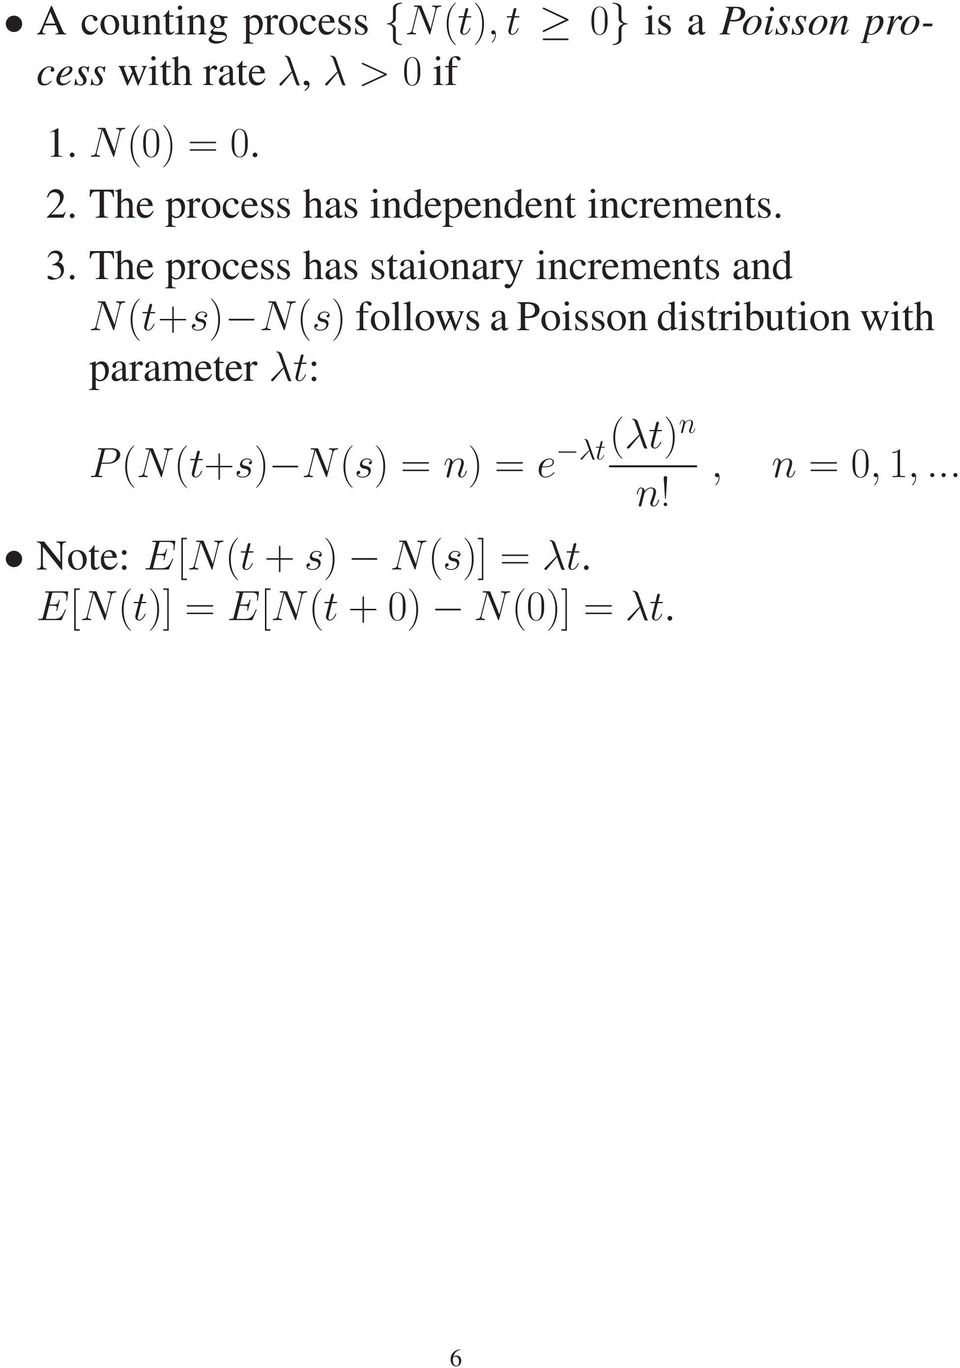 The process has staionary increments and N(t+s) N(s) follows a Poisson distribution